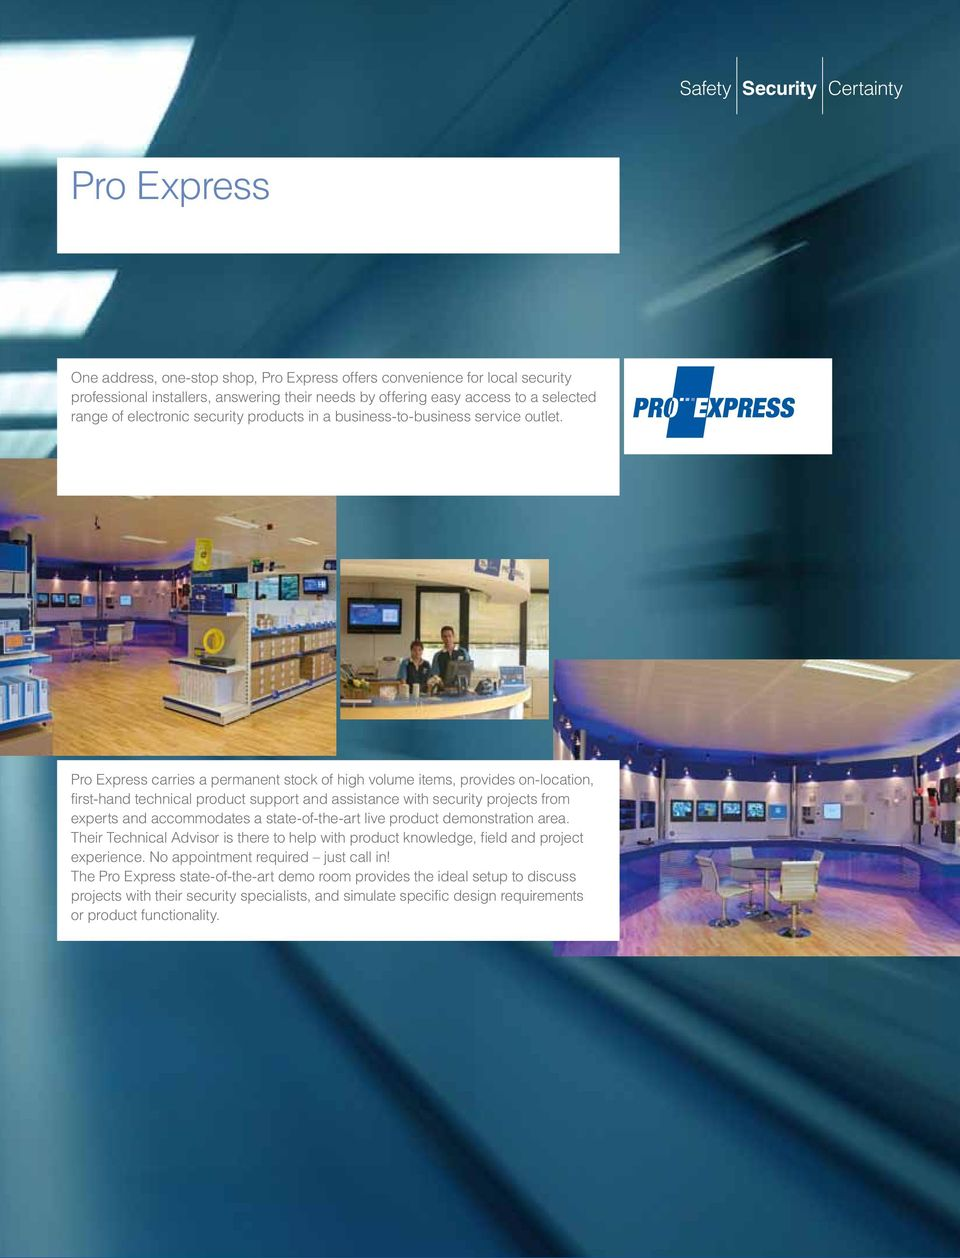 Pro Express carries a permanent stock of high volume items, provides on-location, first-hand technical product support and assistance with security projects from experts and accommodates a